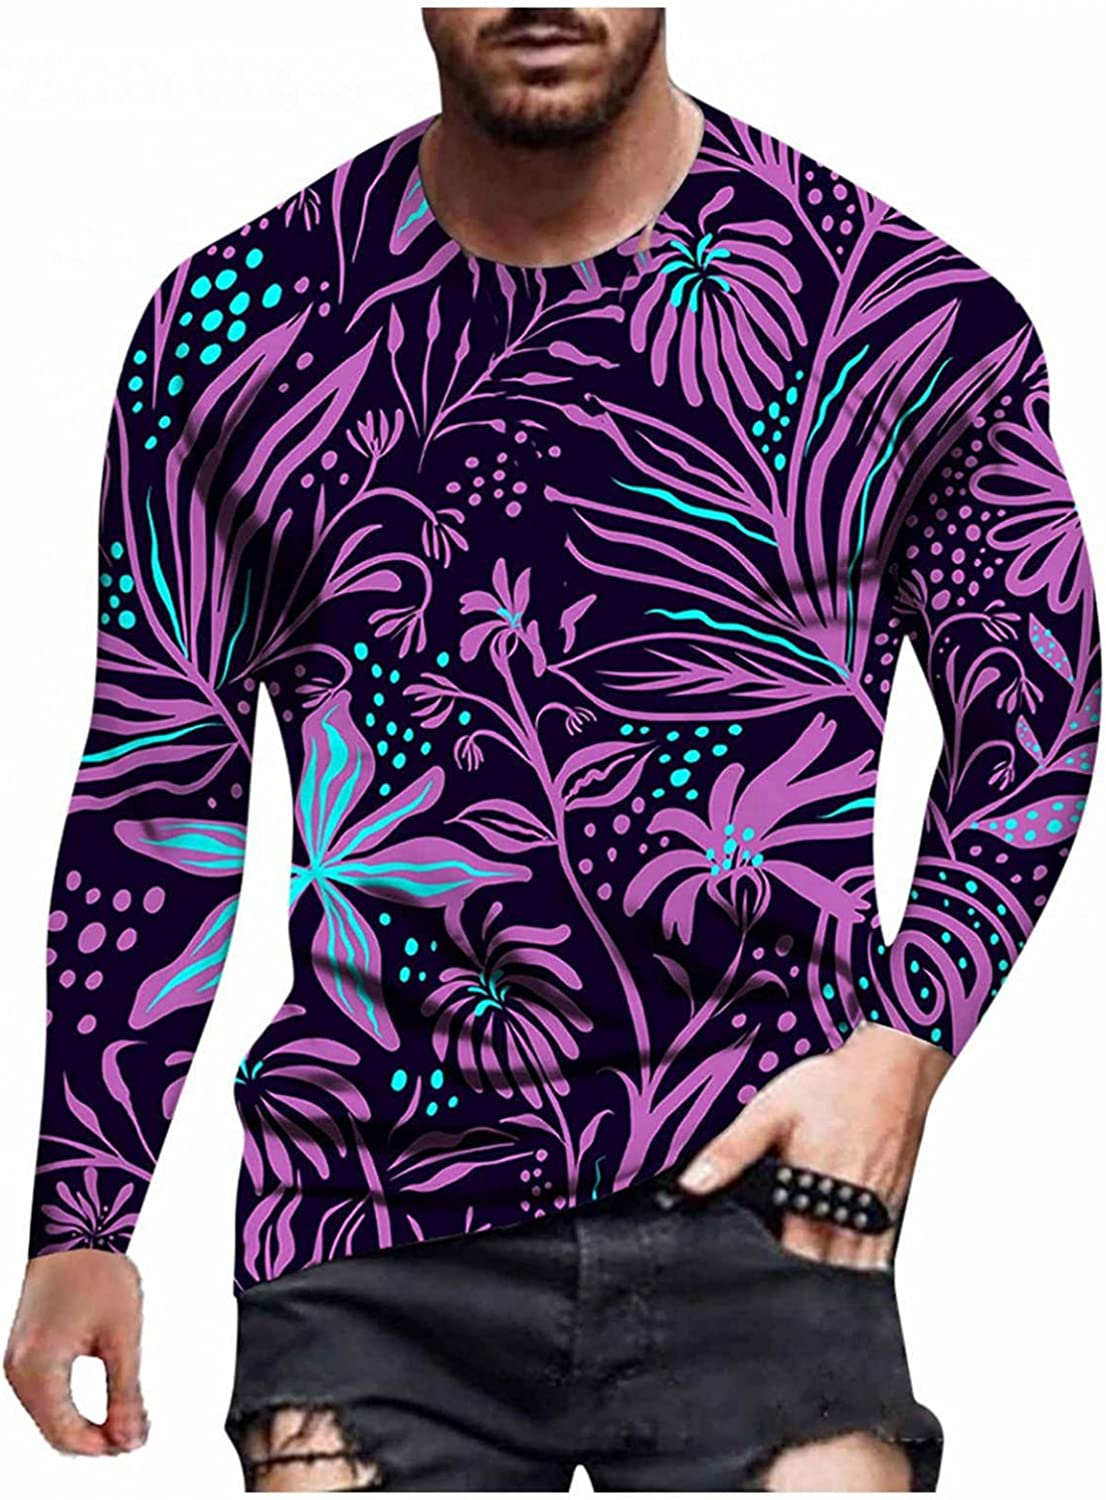 Aayomet T-Shirts for Men Fashion Printed Crewneck Long Sleeve Sweatshirts Casual Workout Sport Tee Shirts Blouses Tops